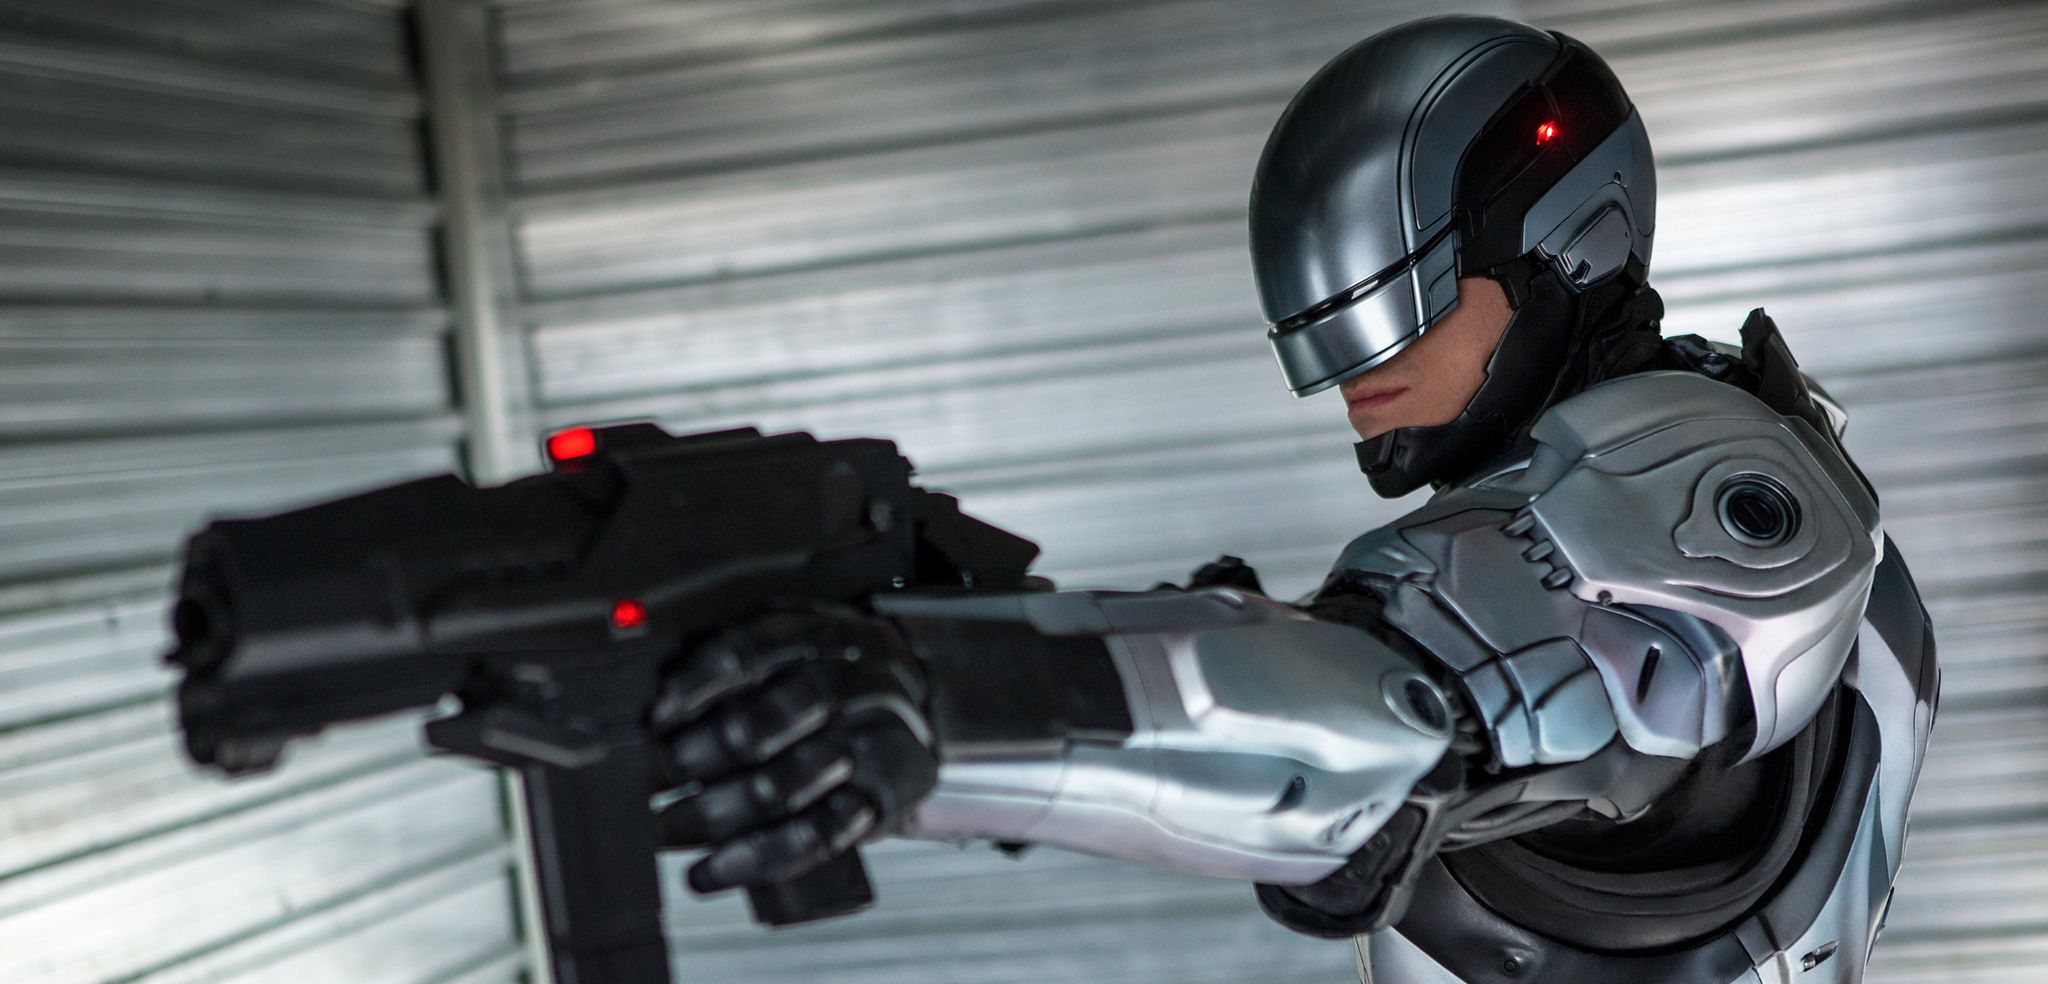 An image from RoboCop